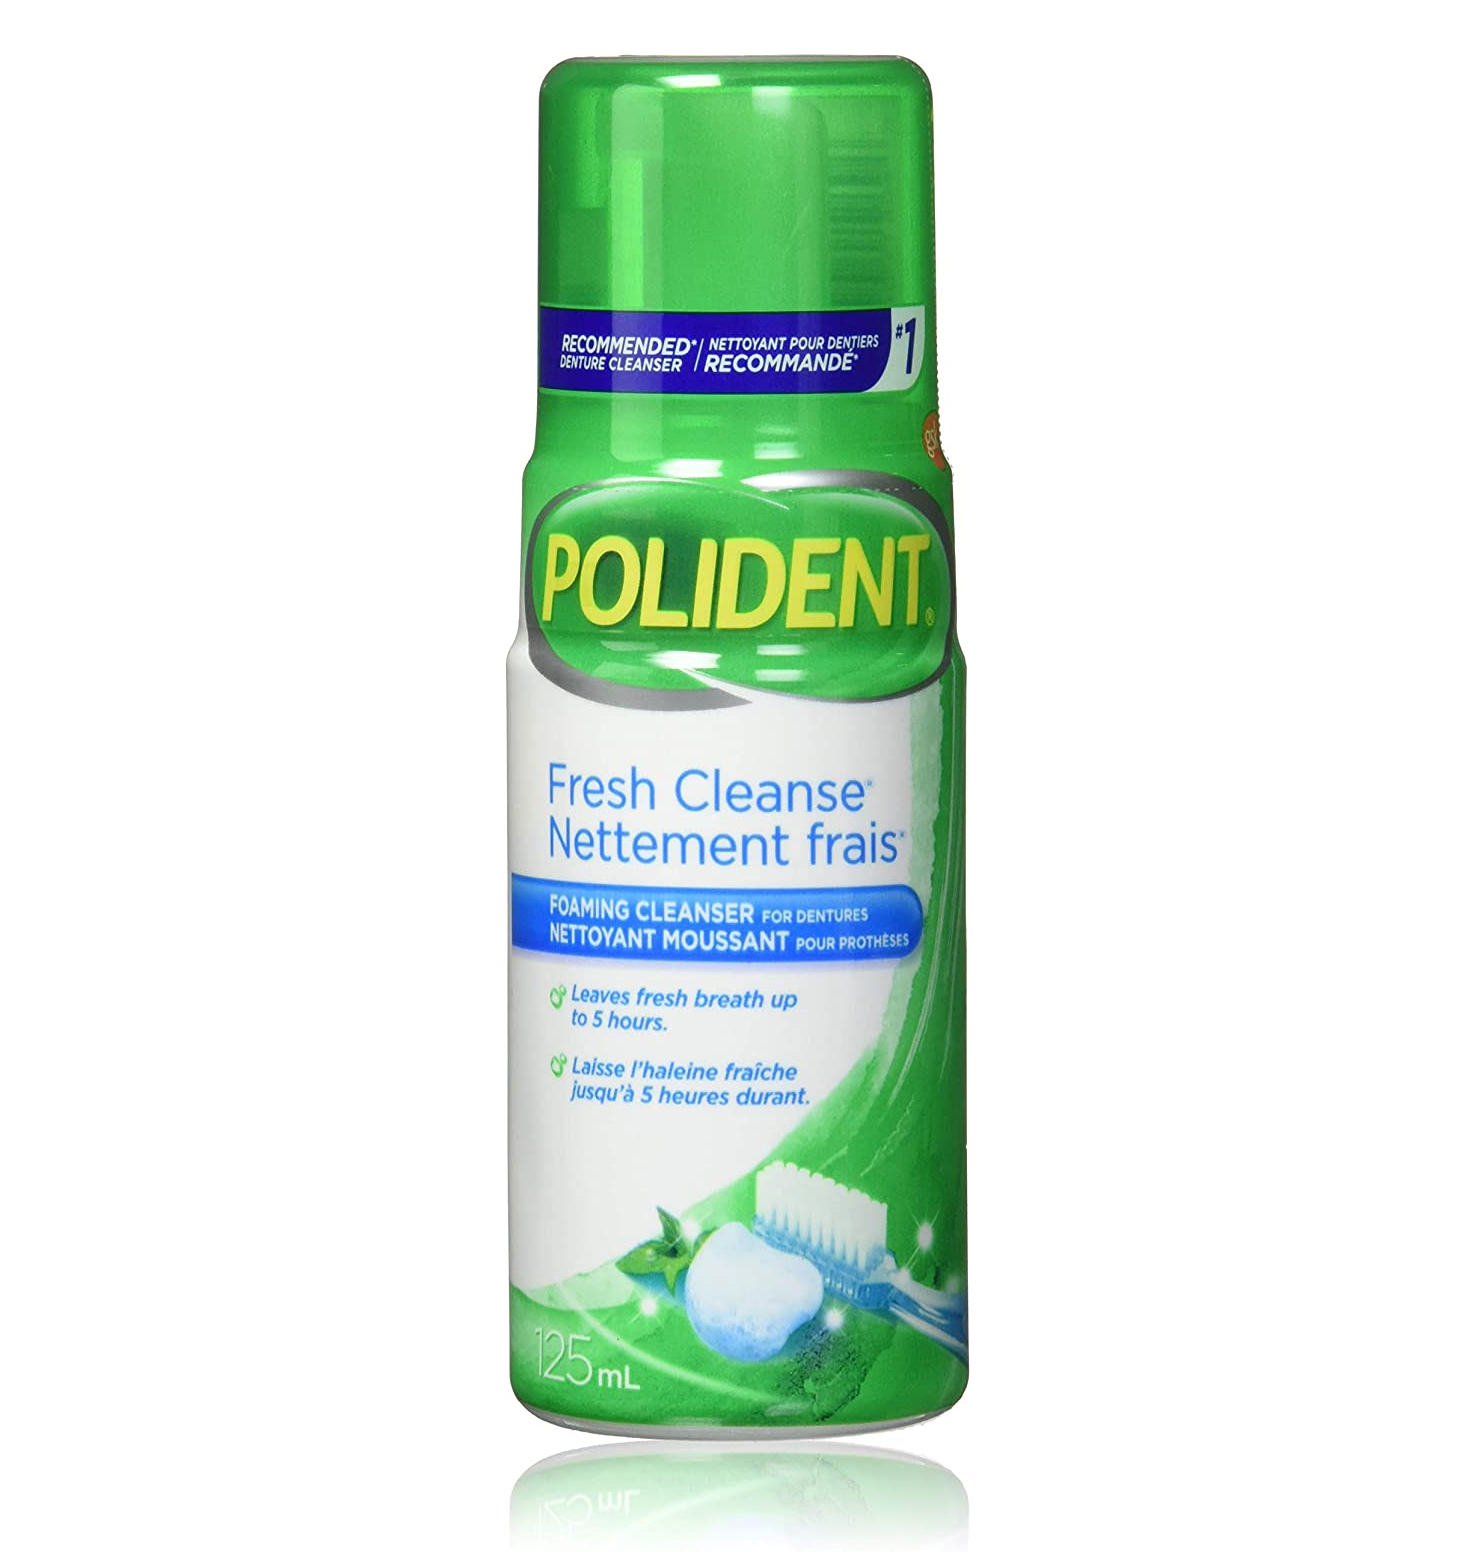 Polident Fresh Cleanse Foaming Cleanser 125mL